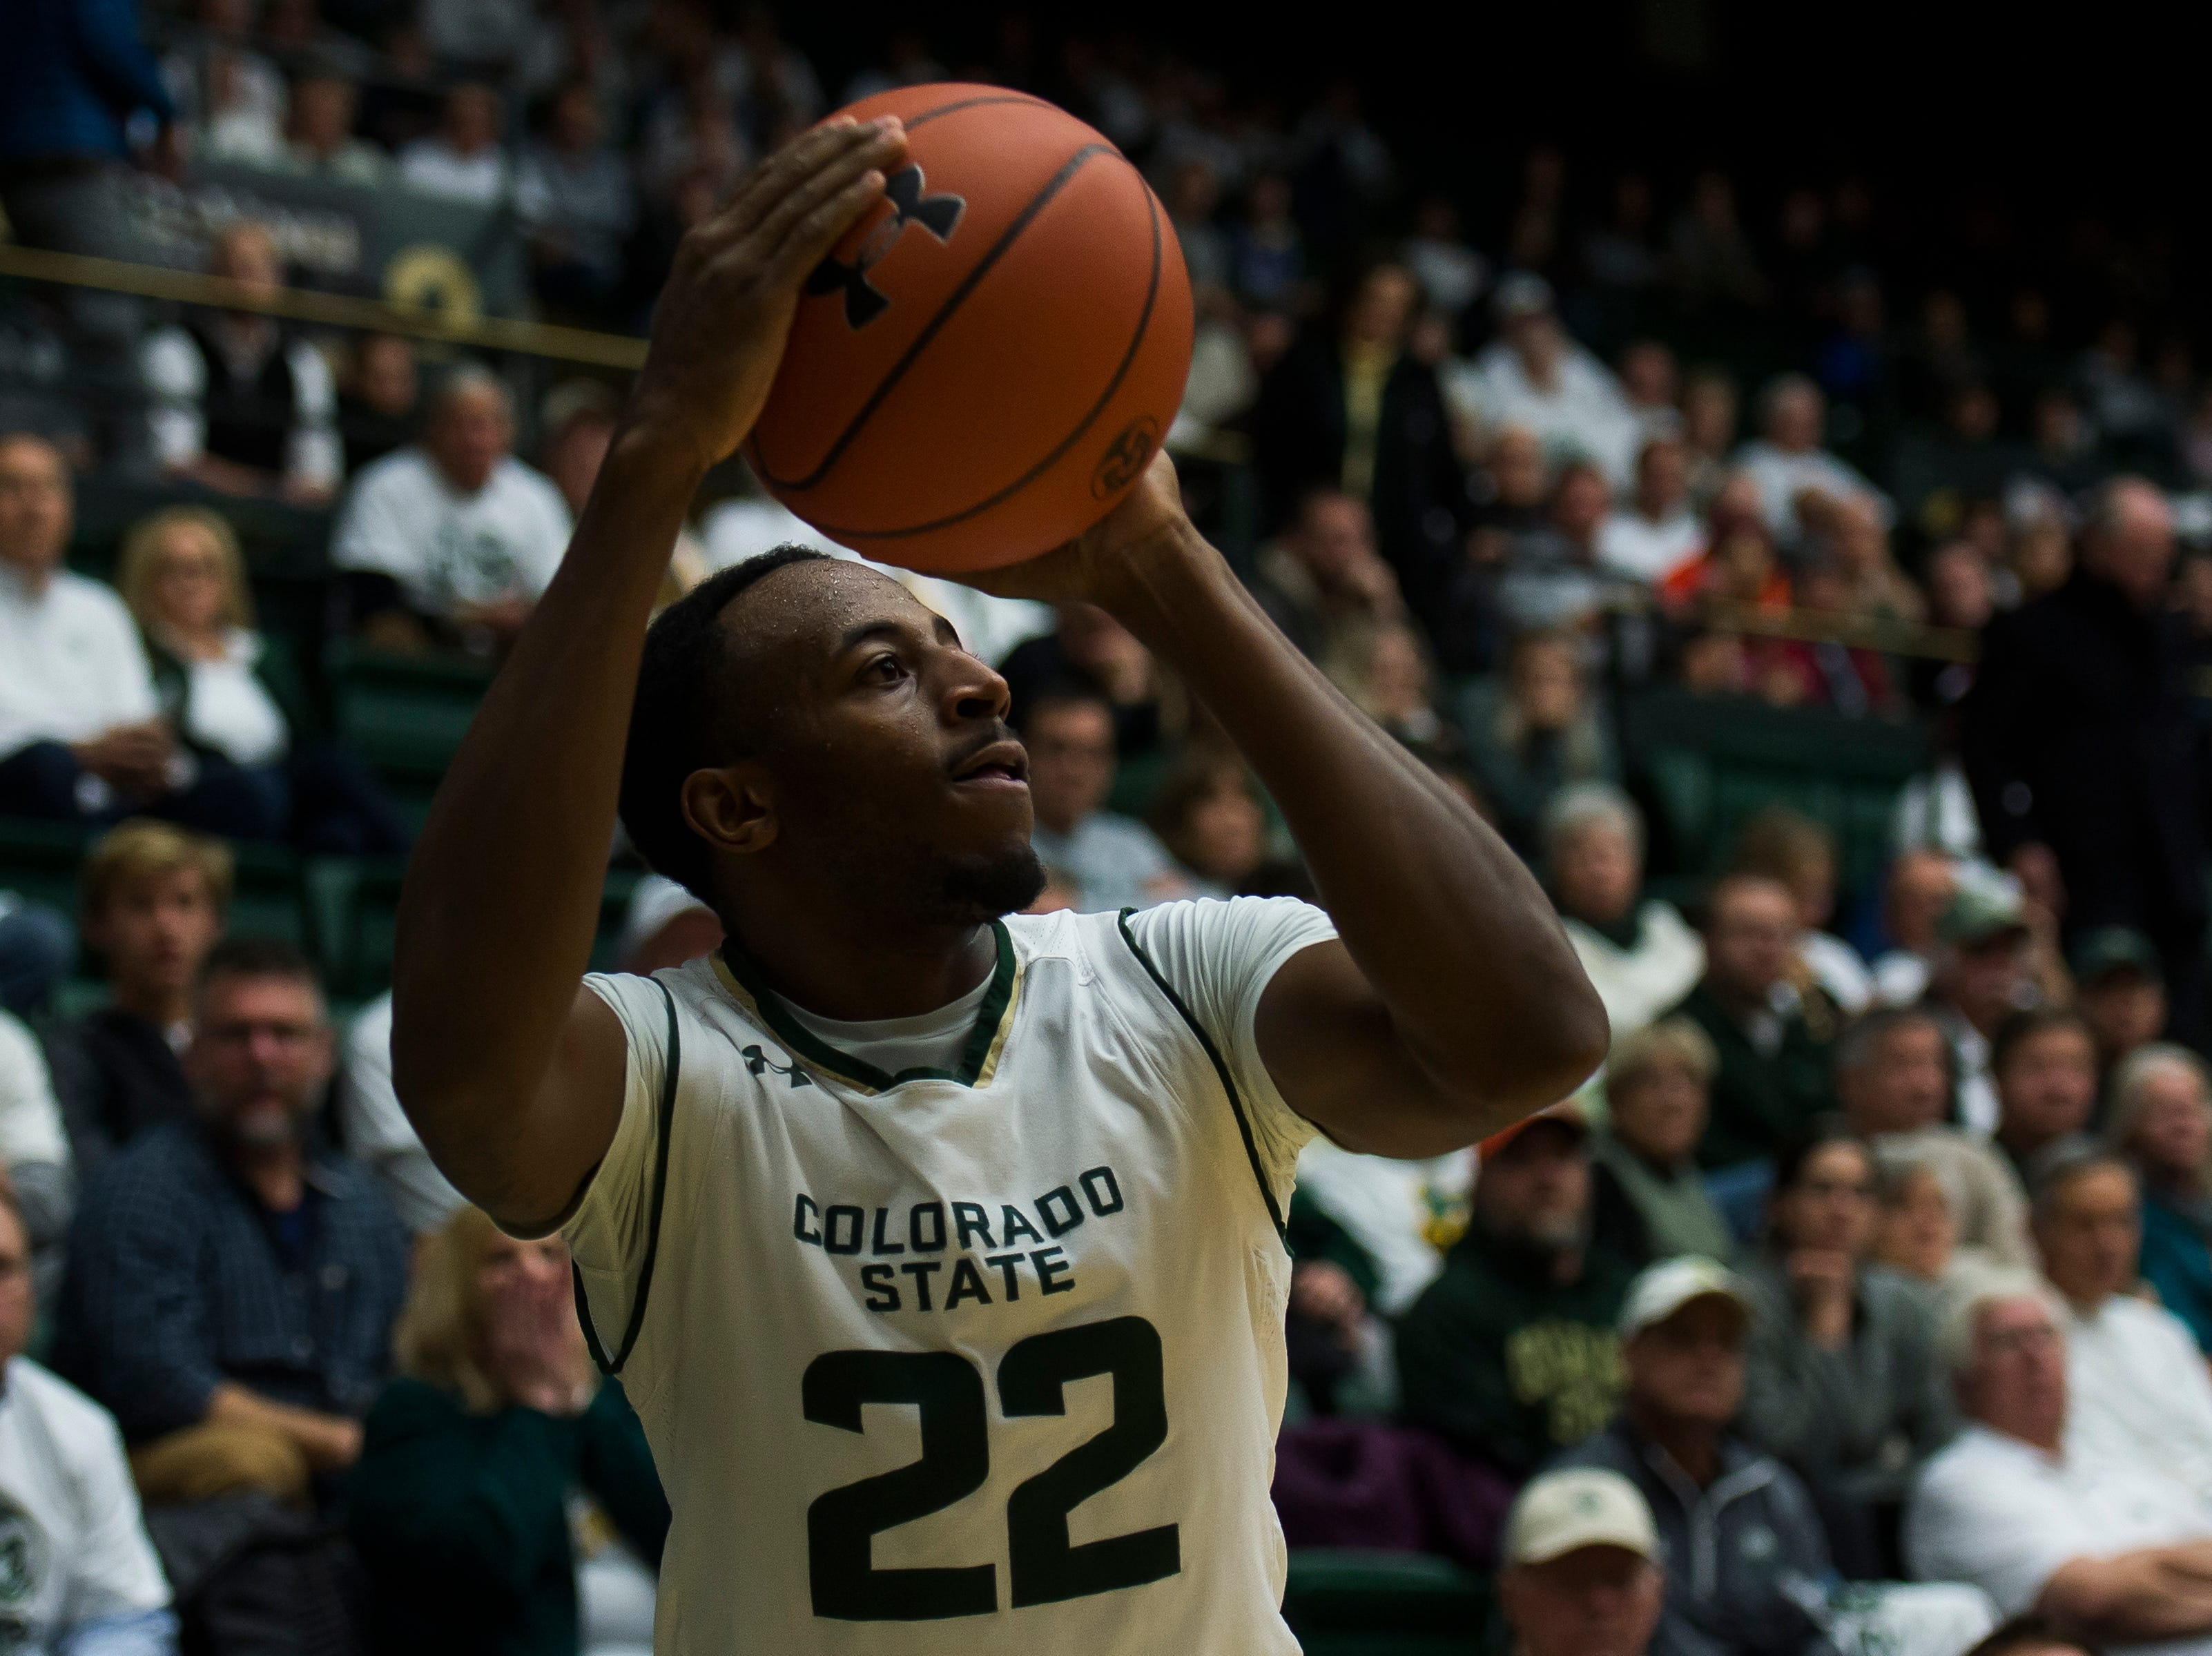 Colorado State University senior guard J.D. Paige (22) attempts three during a game against Arkansas on Wednesday, Dec. 5, 2018, Moby Arena in Fort Collins, Colo.